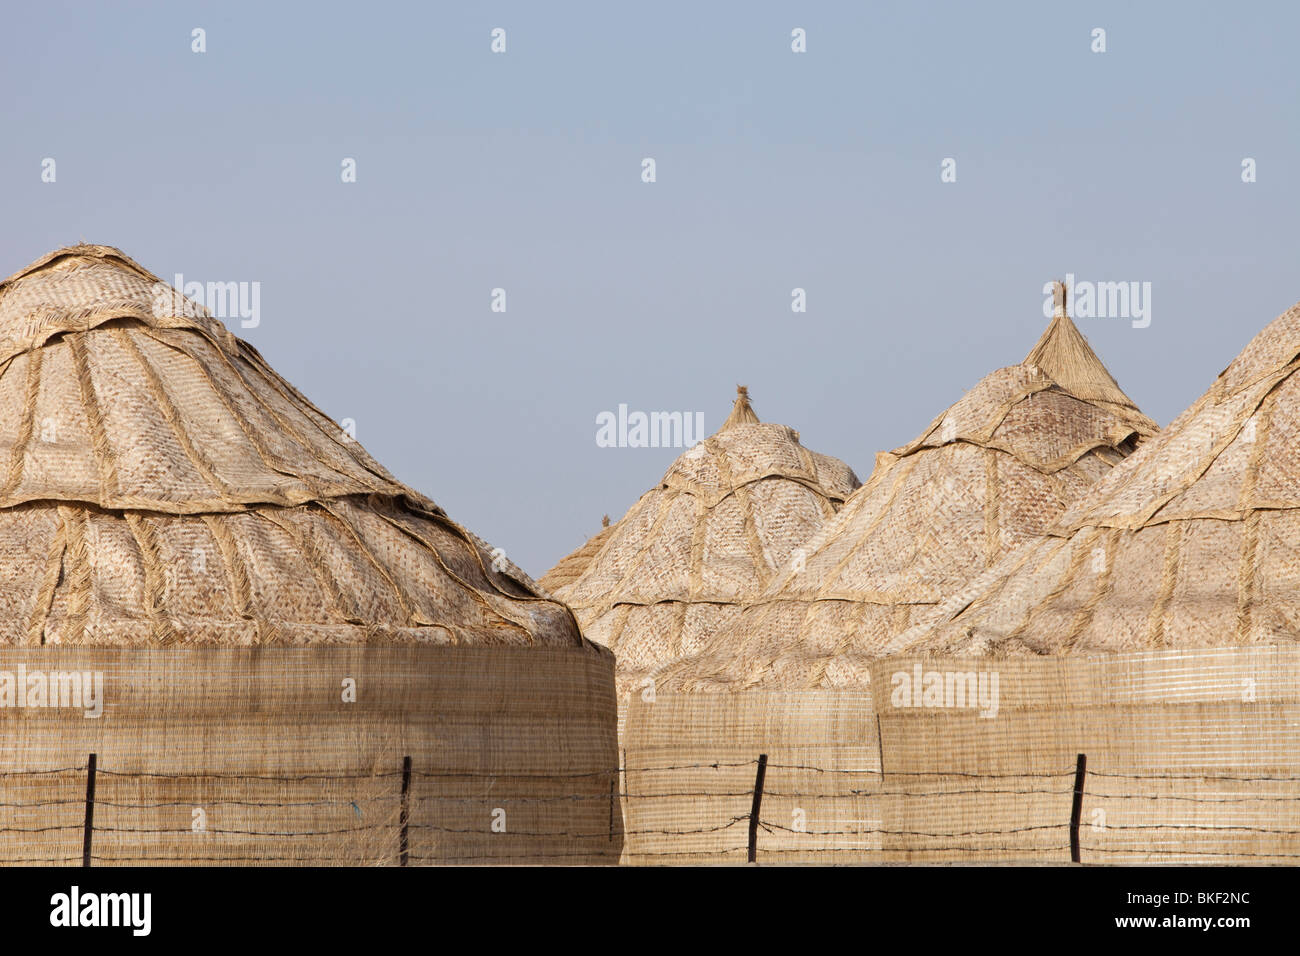 Food storage depots in Heilongjiang Province, northern China - Stock Image